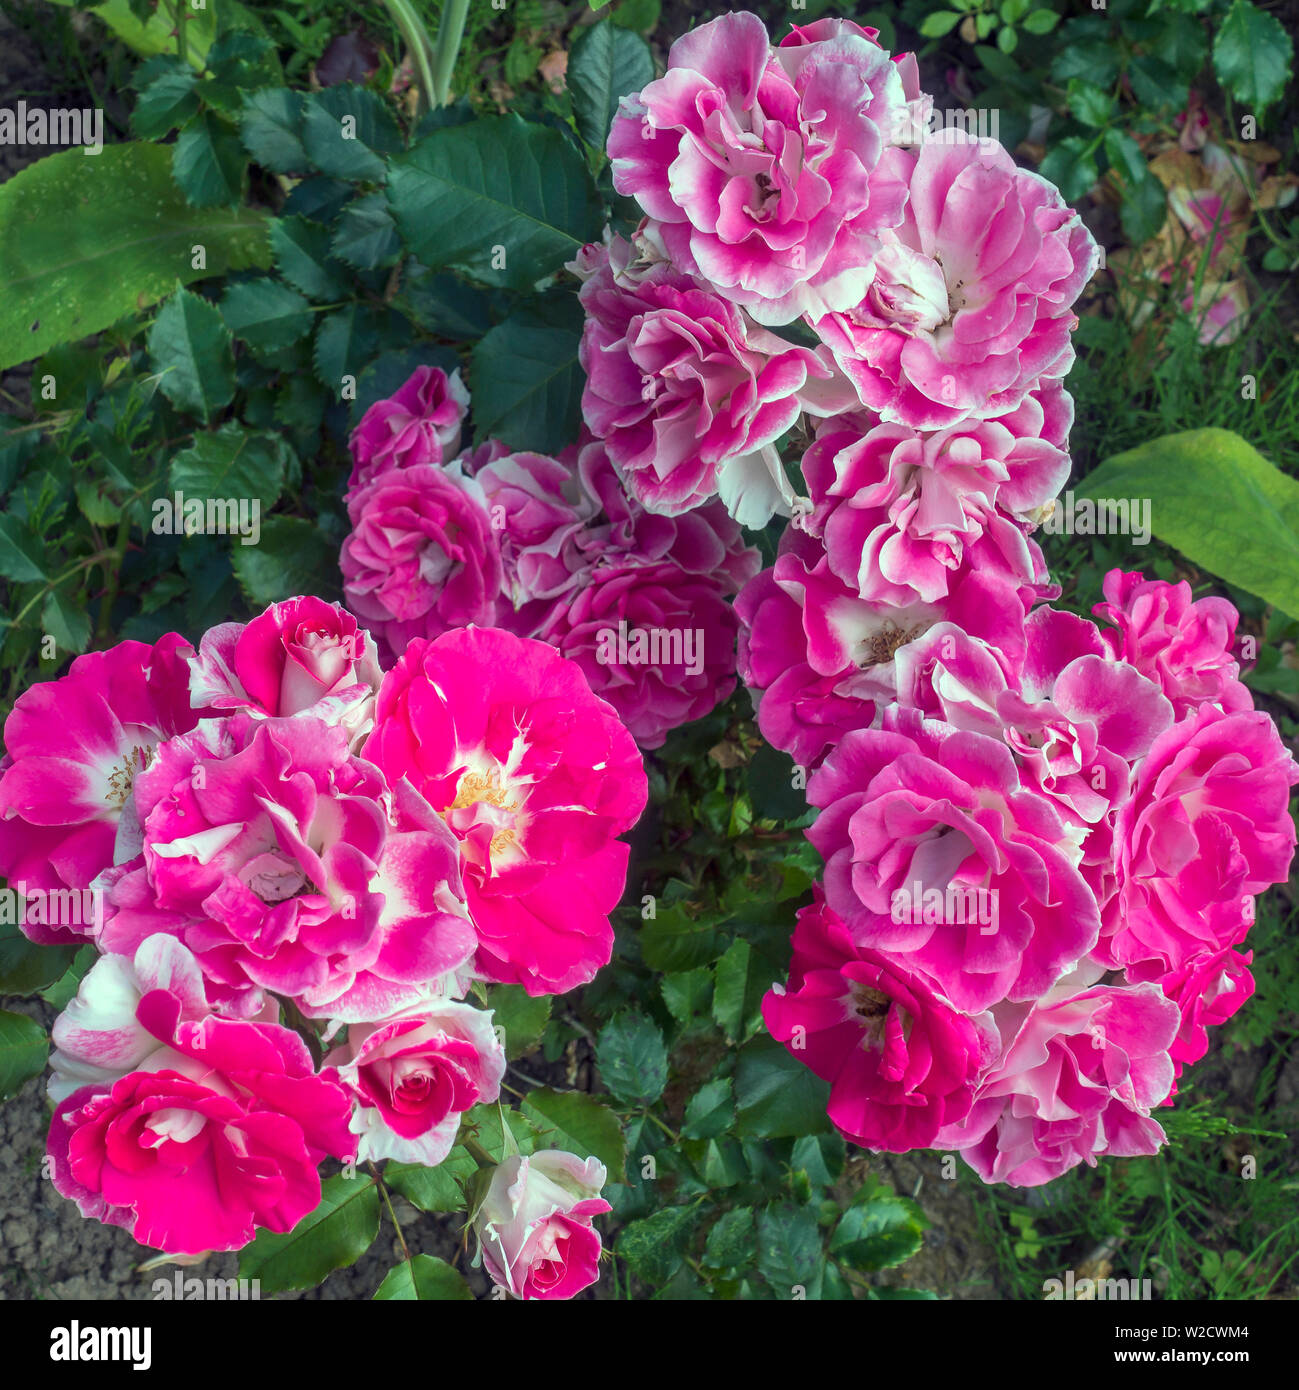 Pink and White Rose, Rosa - Stock Image